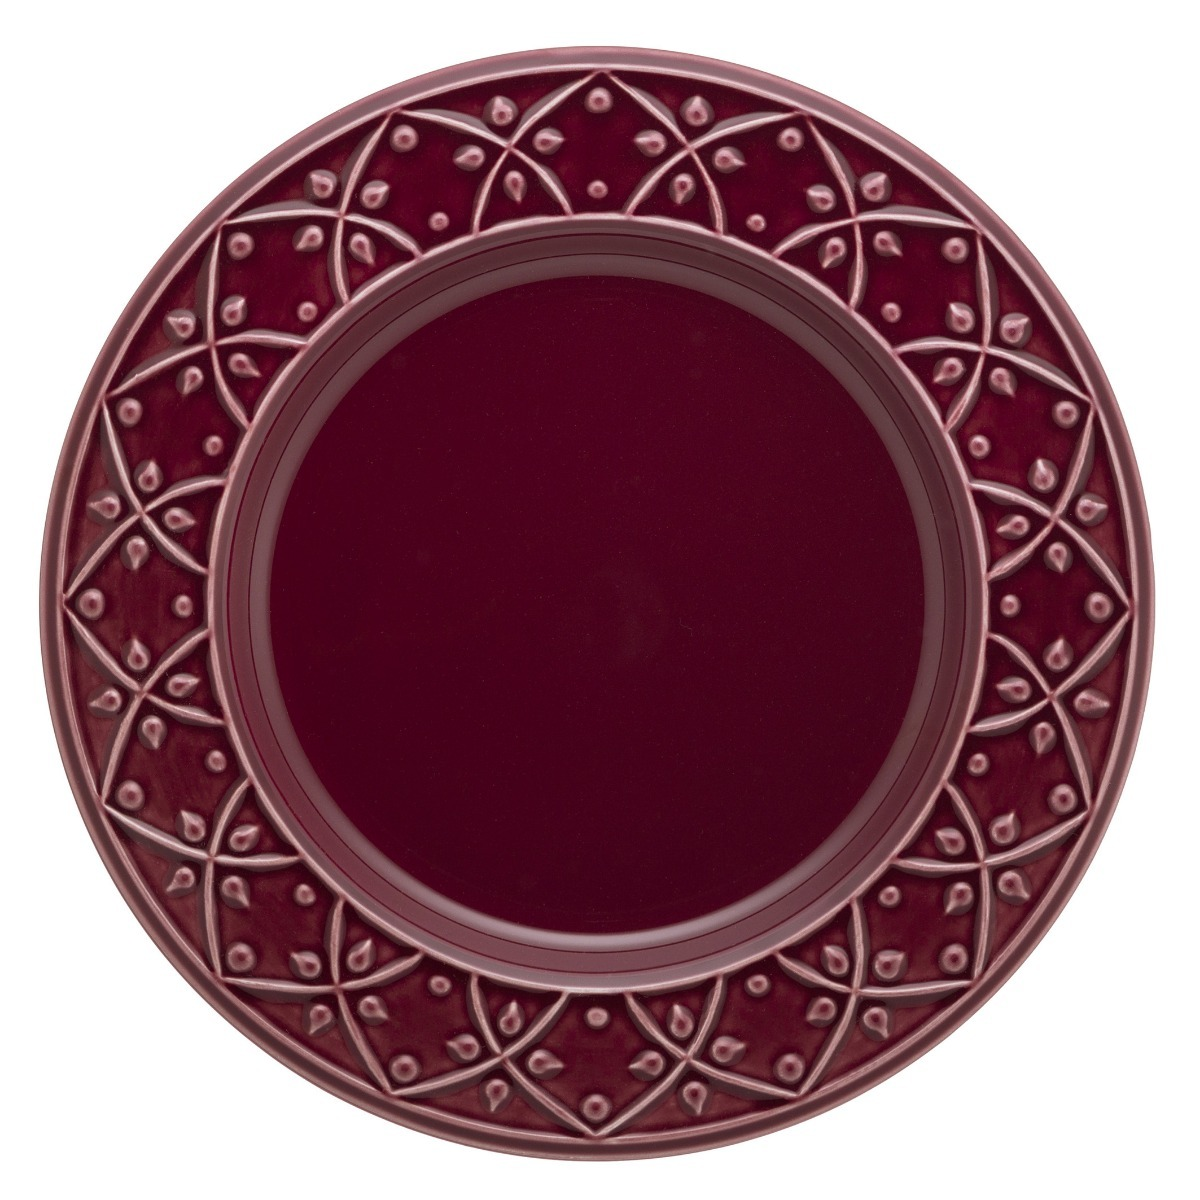 Set 6 Platos Playo Ceramica Oxford Corvina Bordo Finorelieve